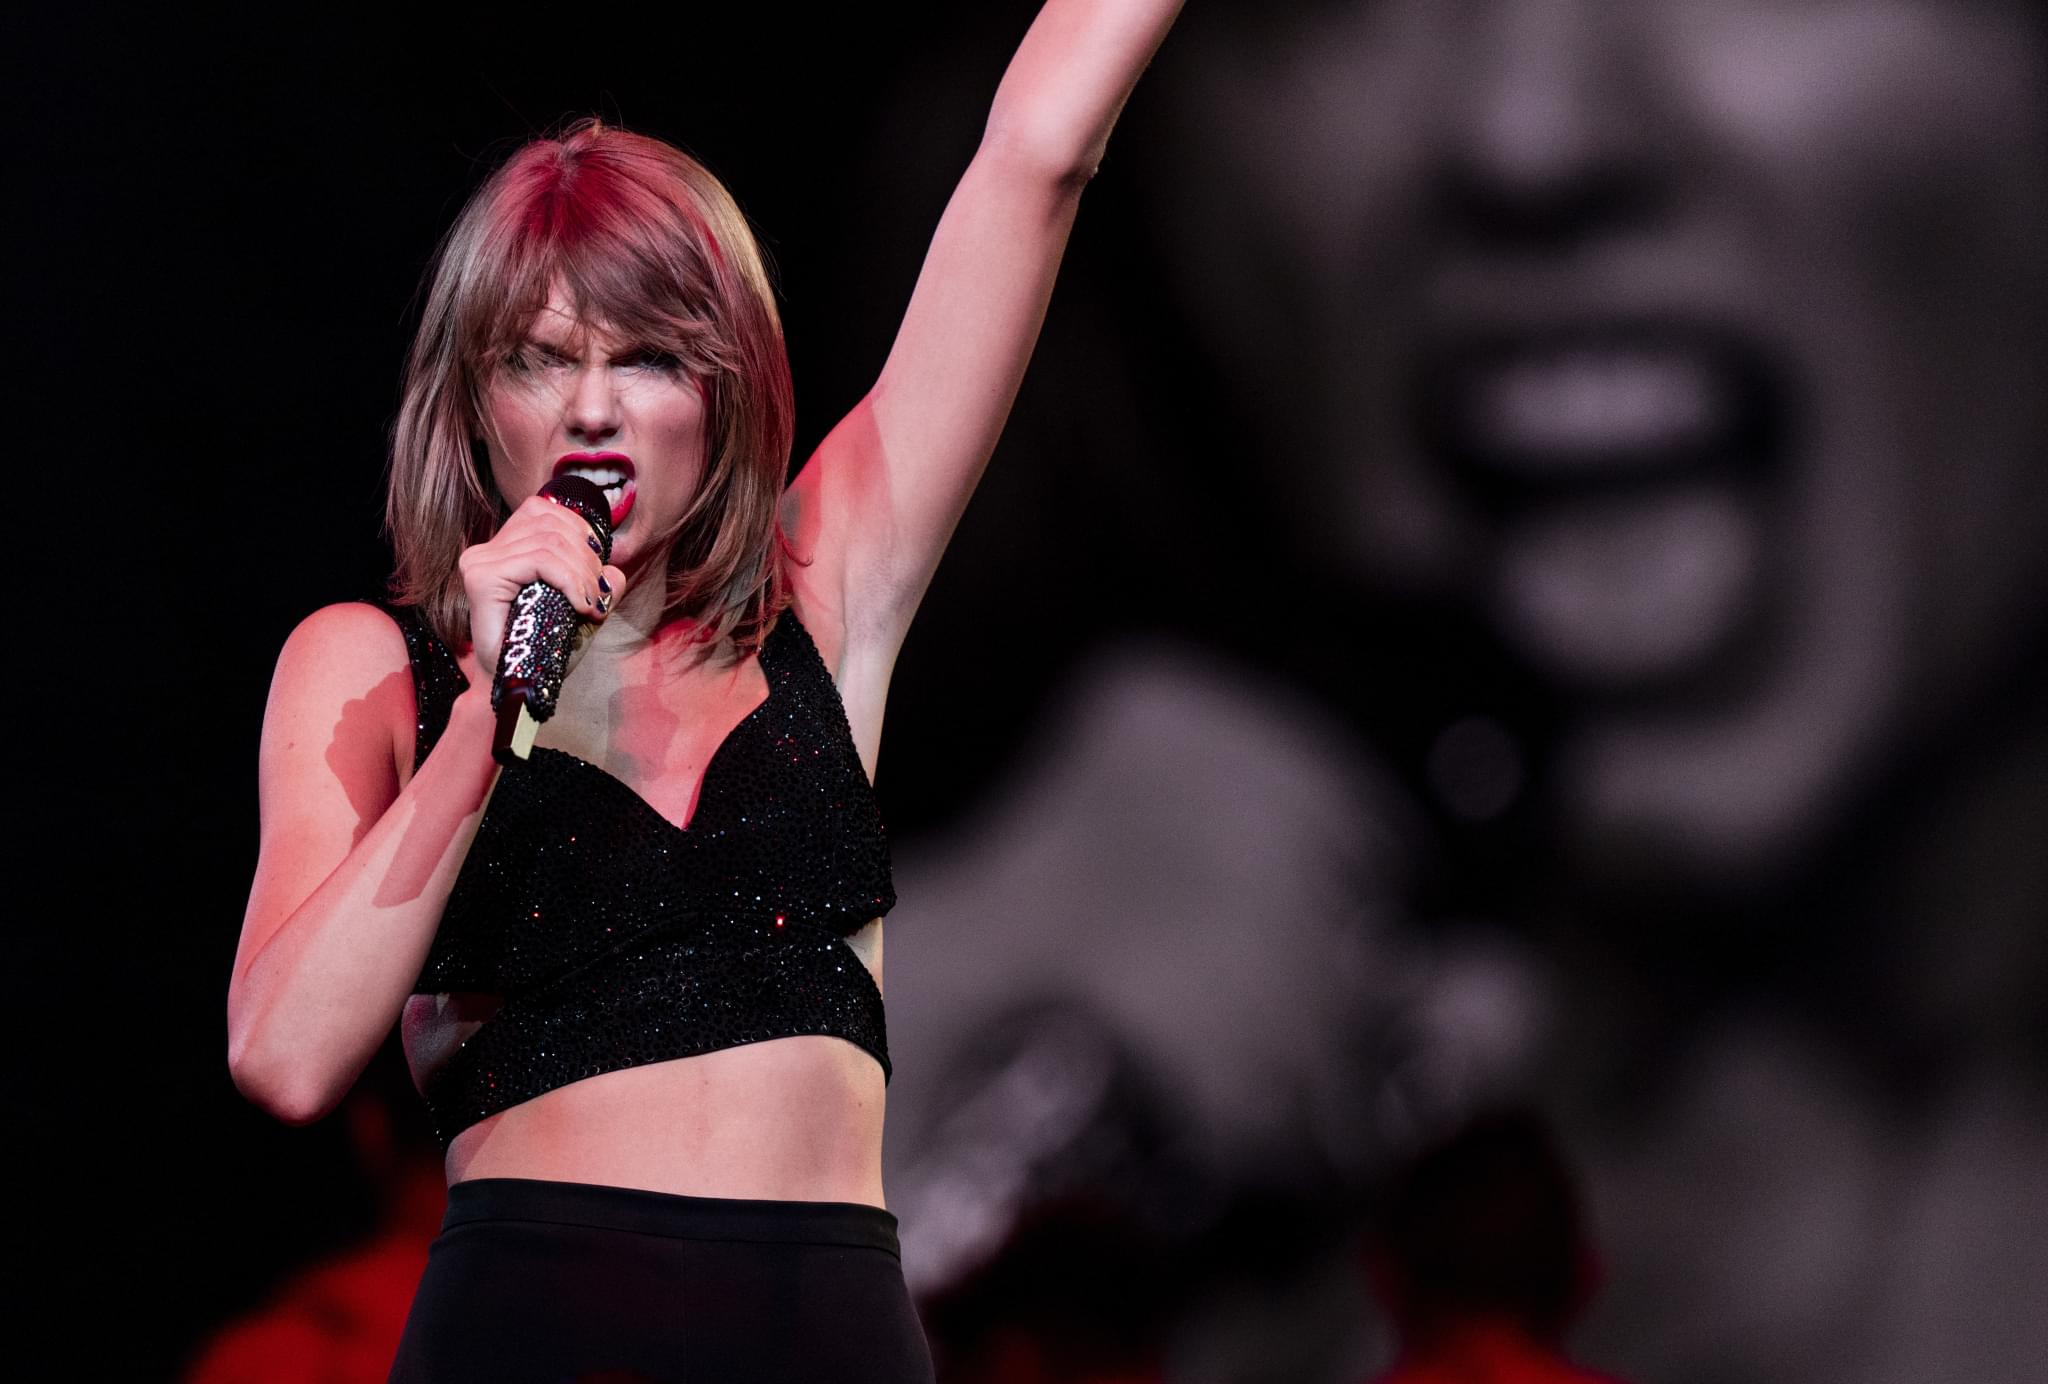 Kelly Clarkson Suggests Taylor Swift Re-Record Her Songs